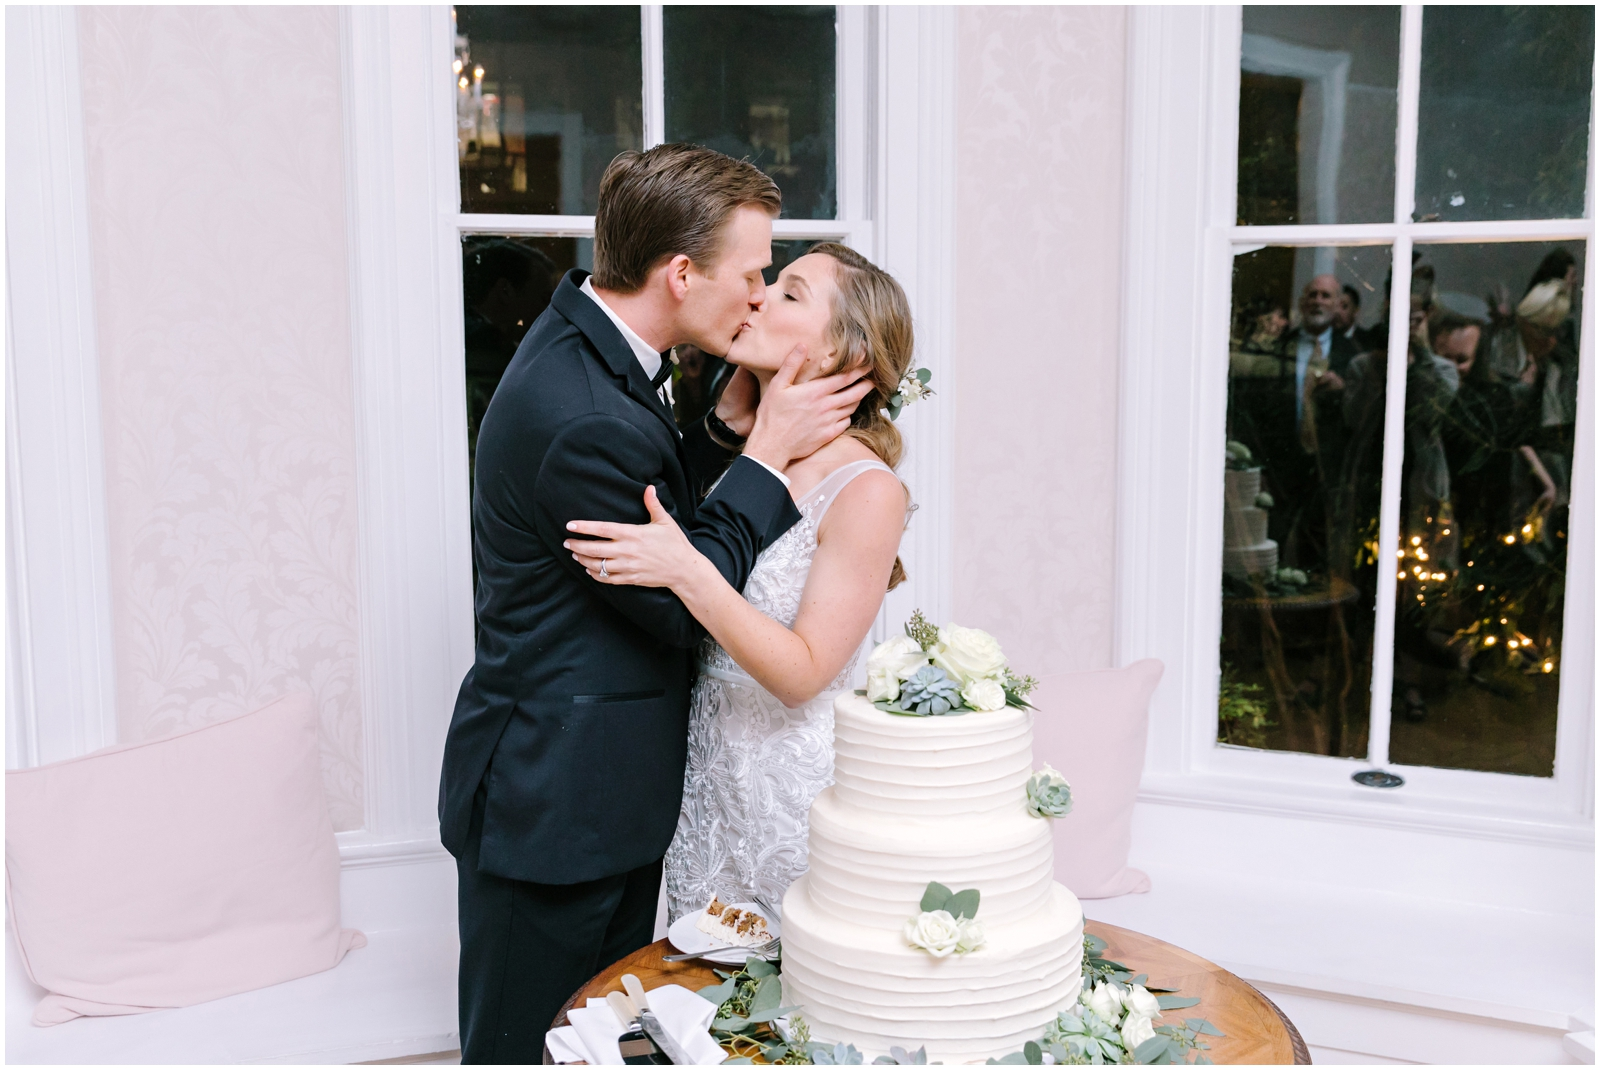 Bride and groom kiss before cutting their wedding cake